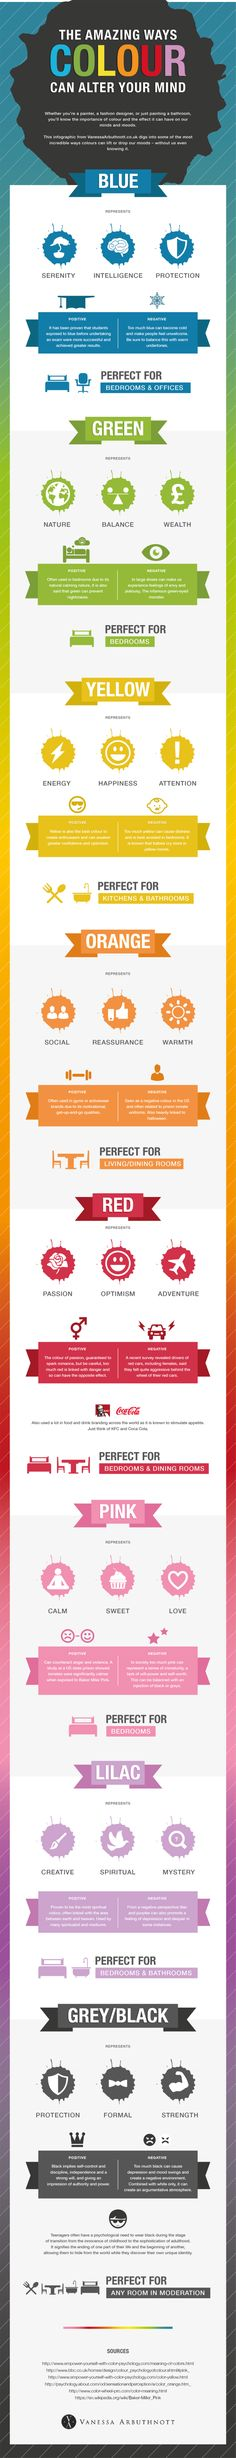 Infographic: The Amazing Ways Color Can Alter Your Mind - DesignTAXI.com